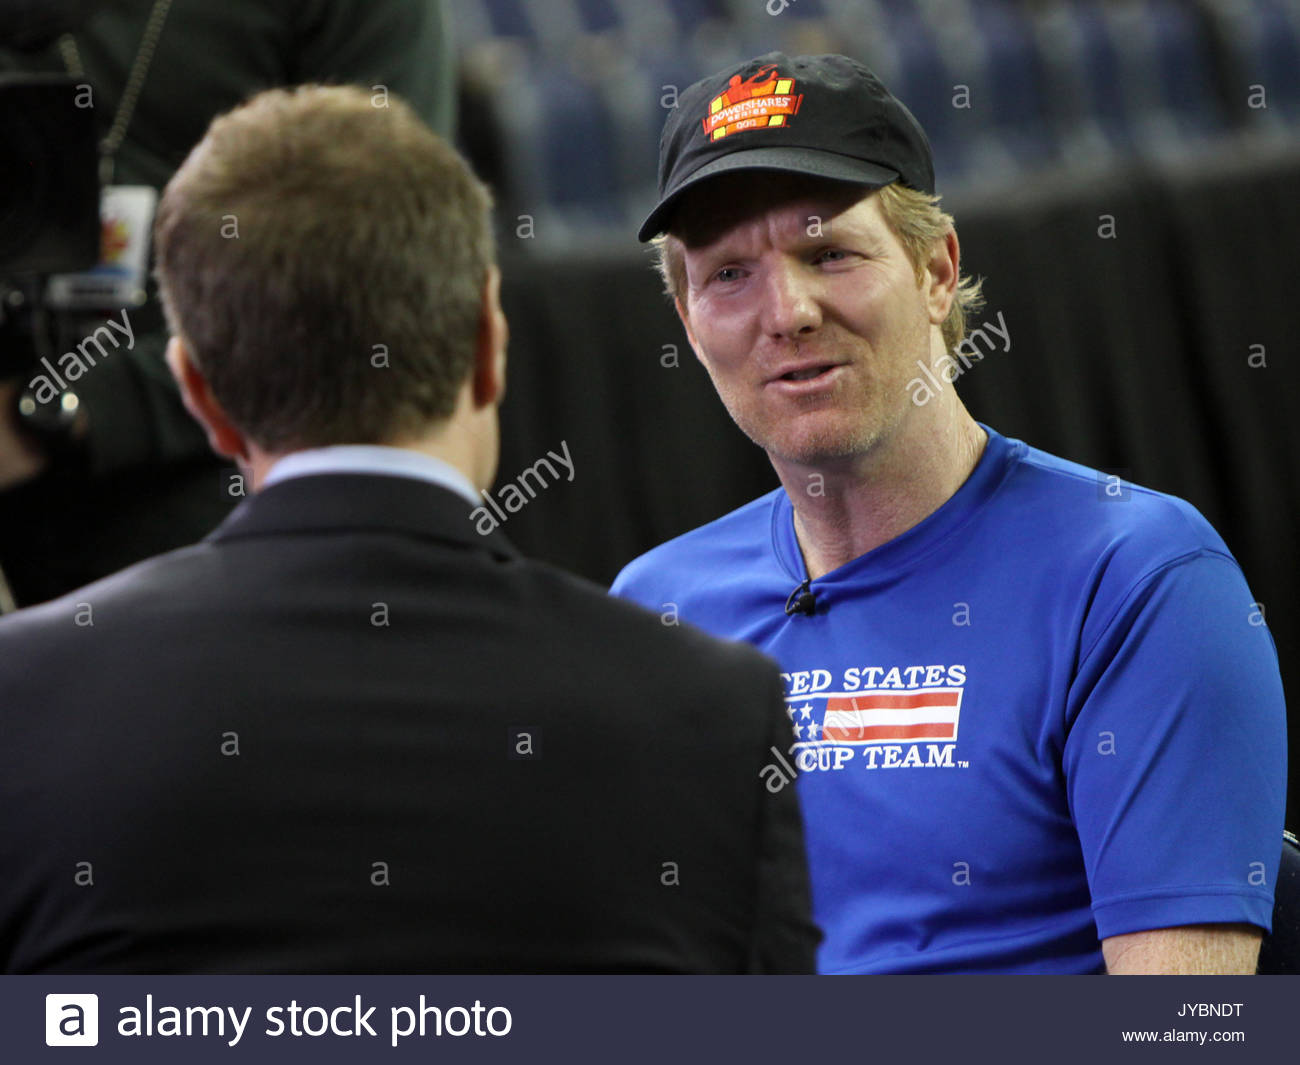 Jim Courier Stock s & Jim Courier Stock Alamy